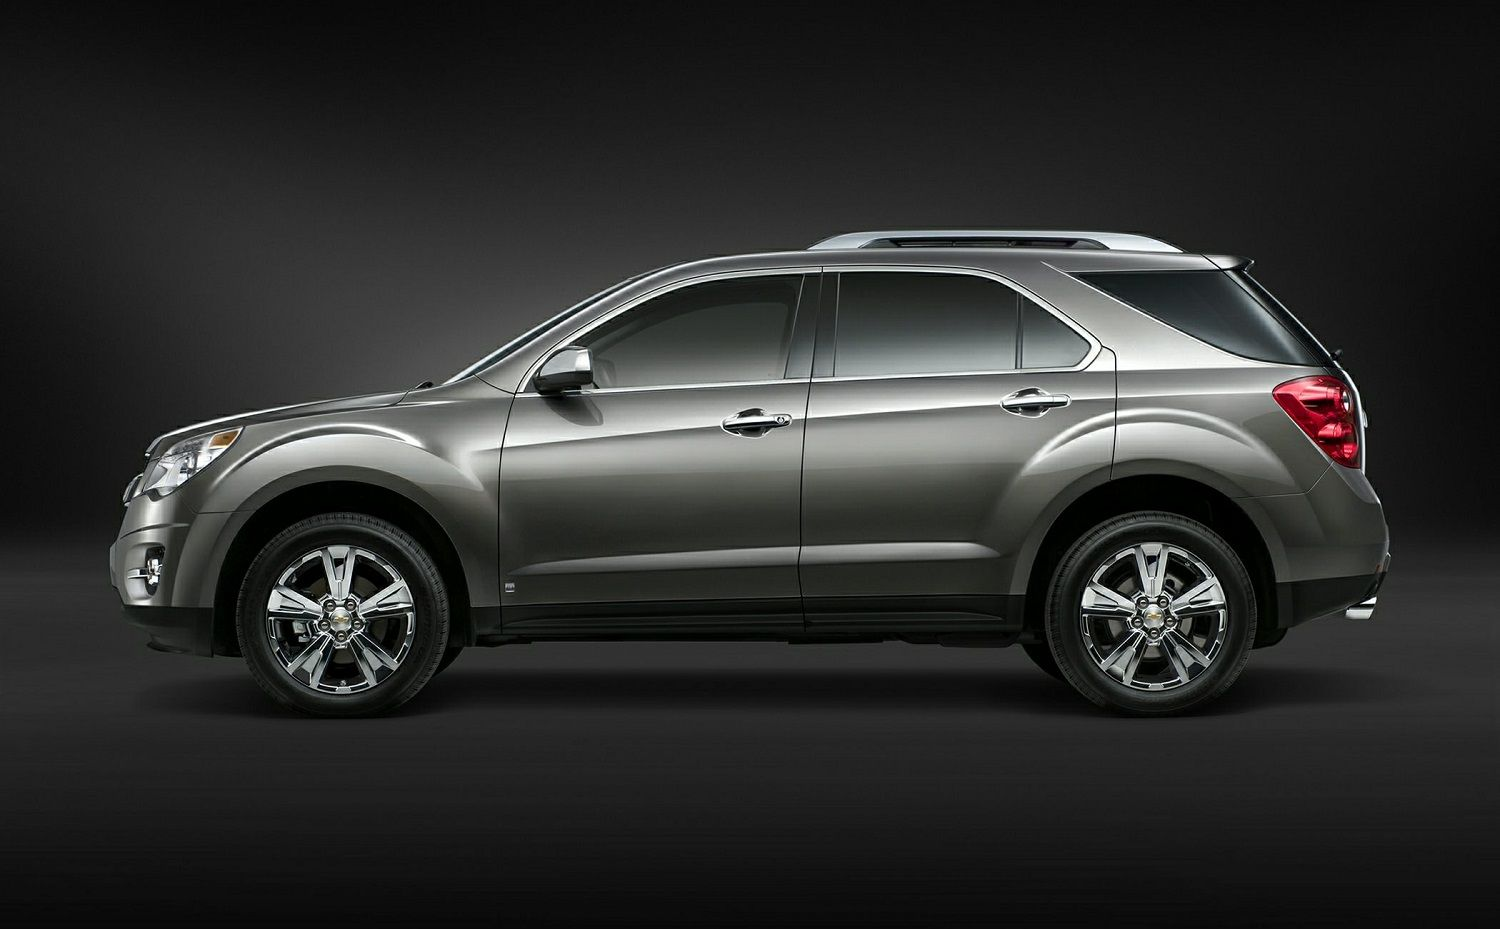 M s de 25 ideas incre bles sobre 2015 chevy equinox en pinterest coches de ensue o